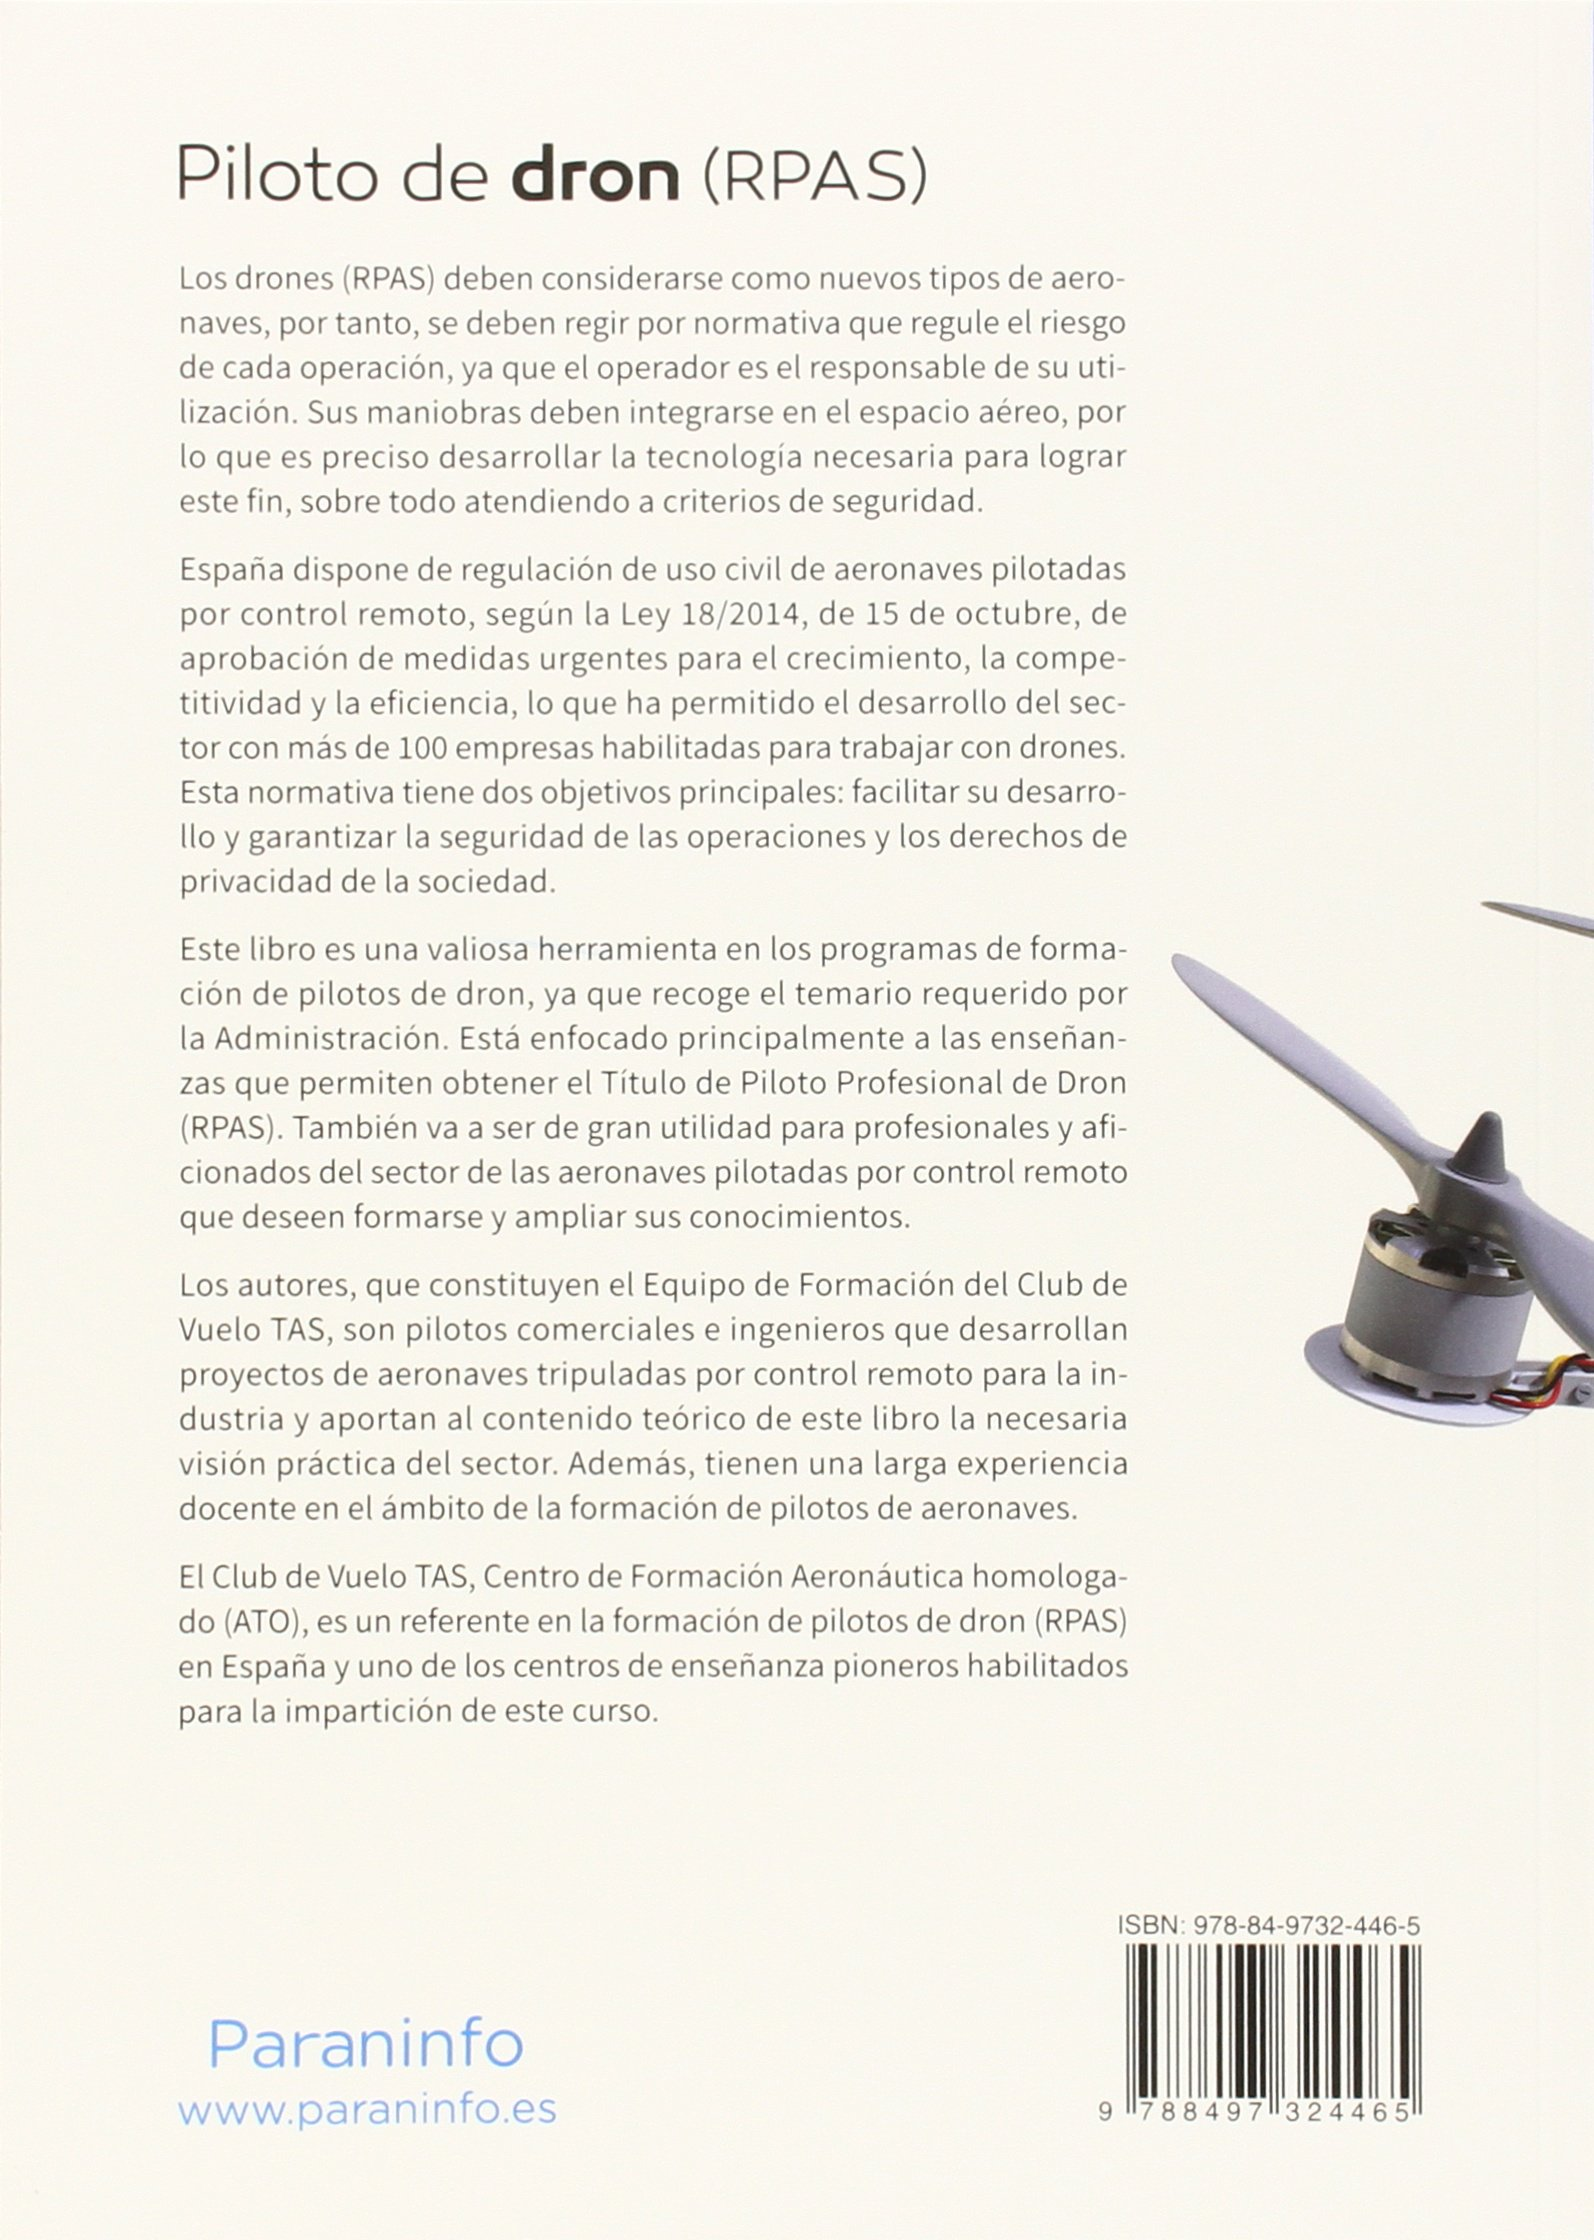 Piloto de dron (RPAS): Amazon.es: DAVID VIRUÉS ORTEGA, JOSE ...